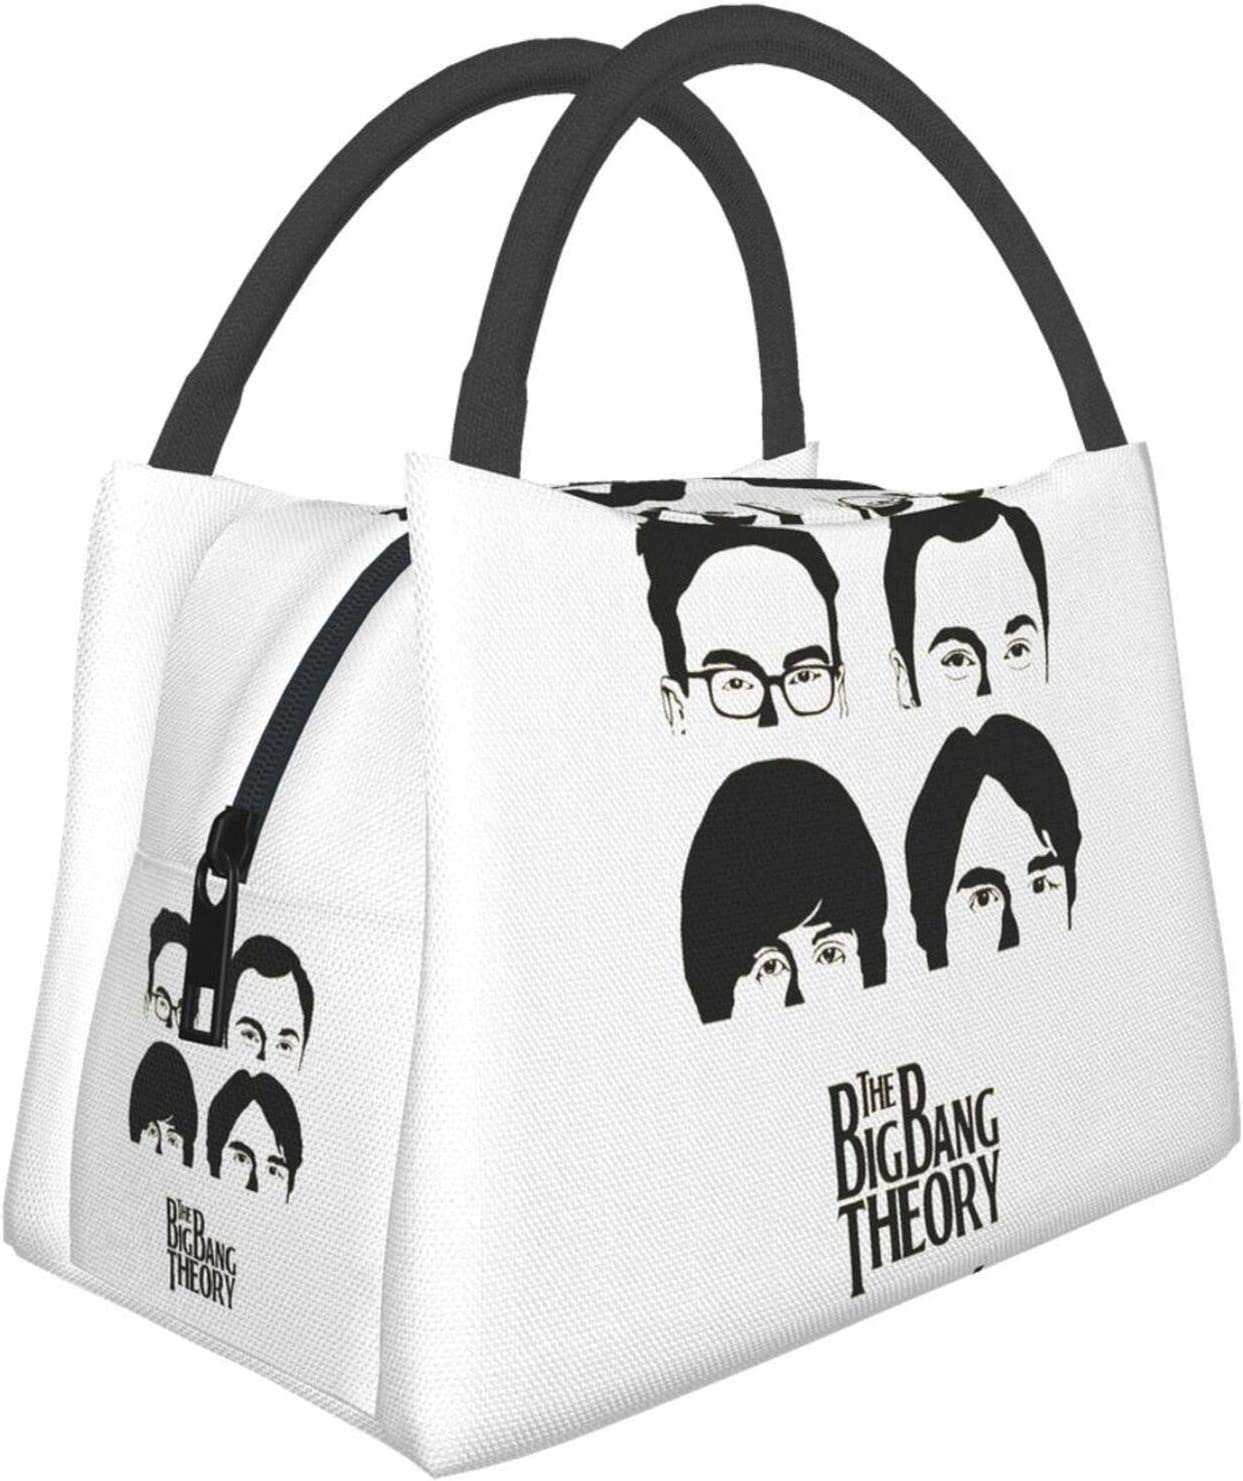 The Big Bang Theory Insulated Lunchboxes Food Bag Resuable Insulation Cooler Lunch Tote Bag For Work Picnic Travel